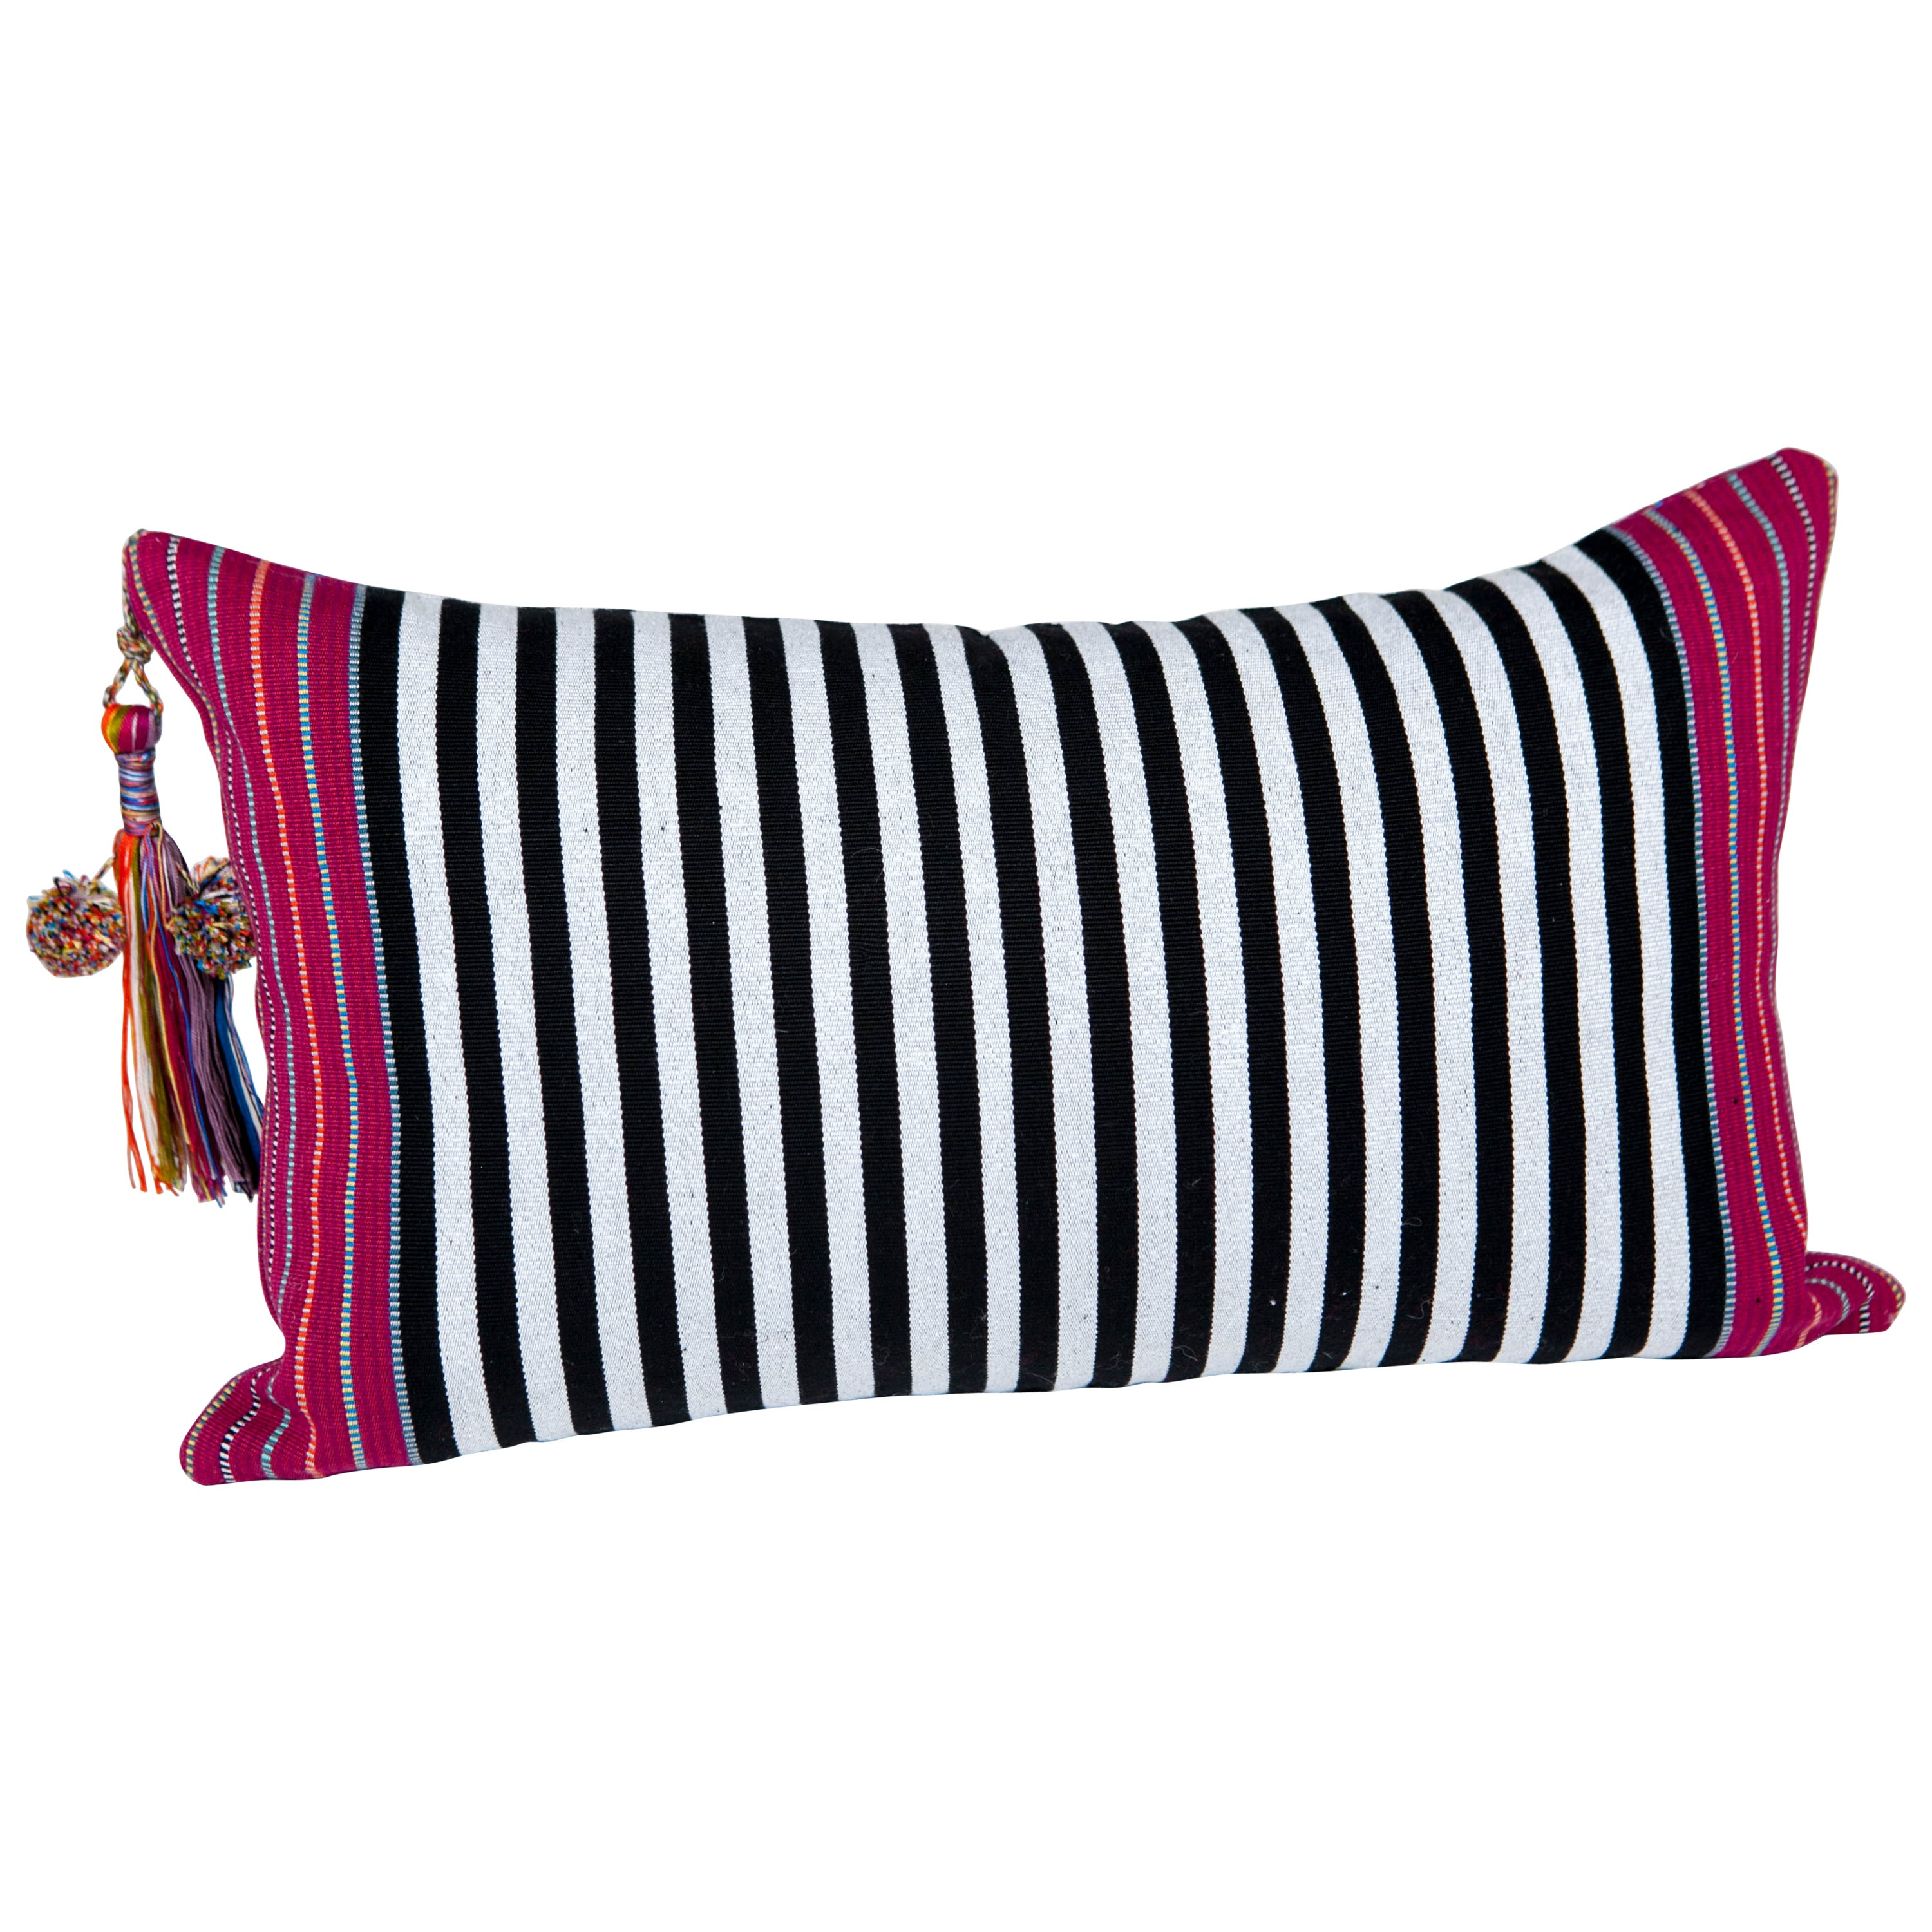 Handwoven Fine Cotton Small Pillow Black Stripes with Red Trim & Tassel in Stock